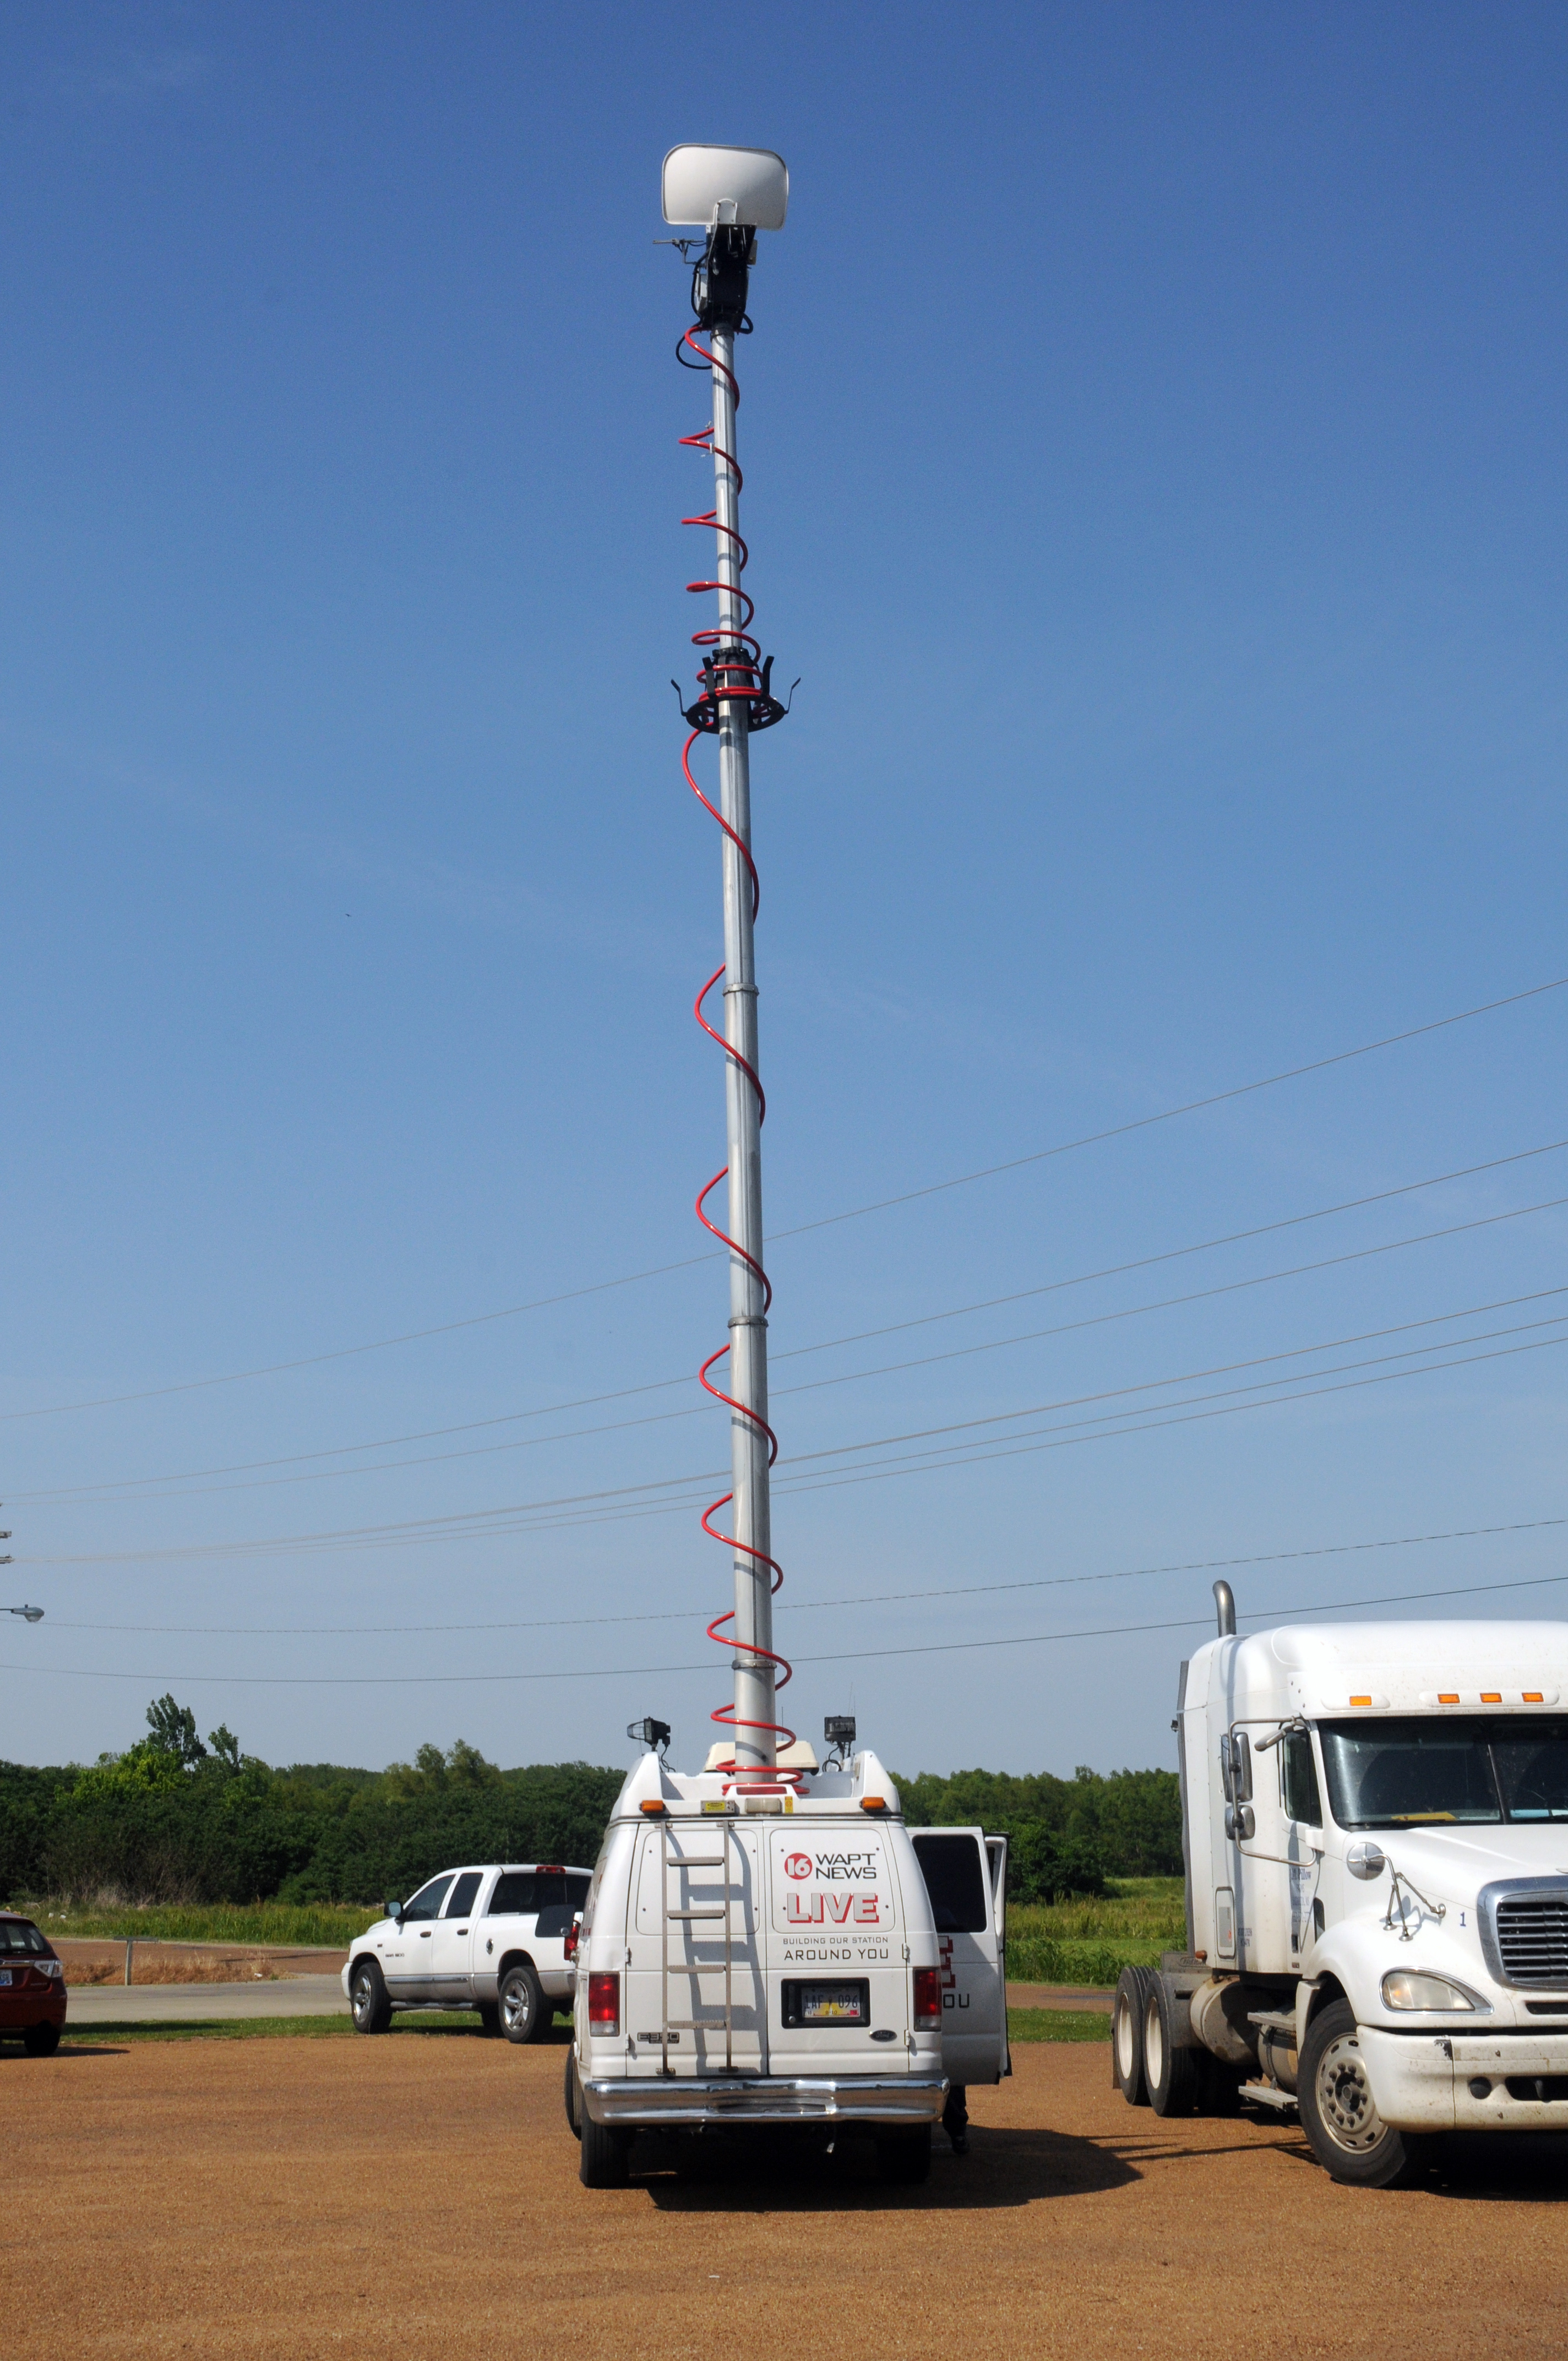 File:FEMA - 44027 - Local Television Crew's truck at